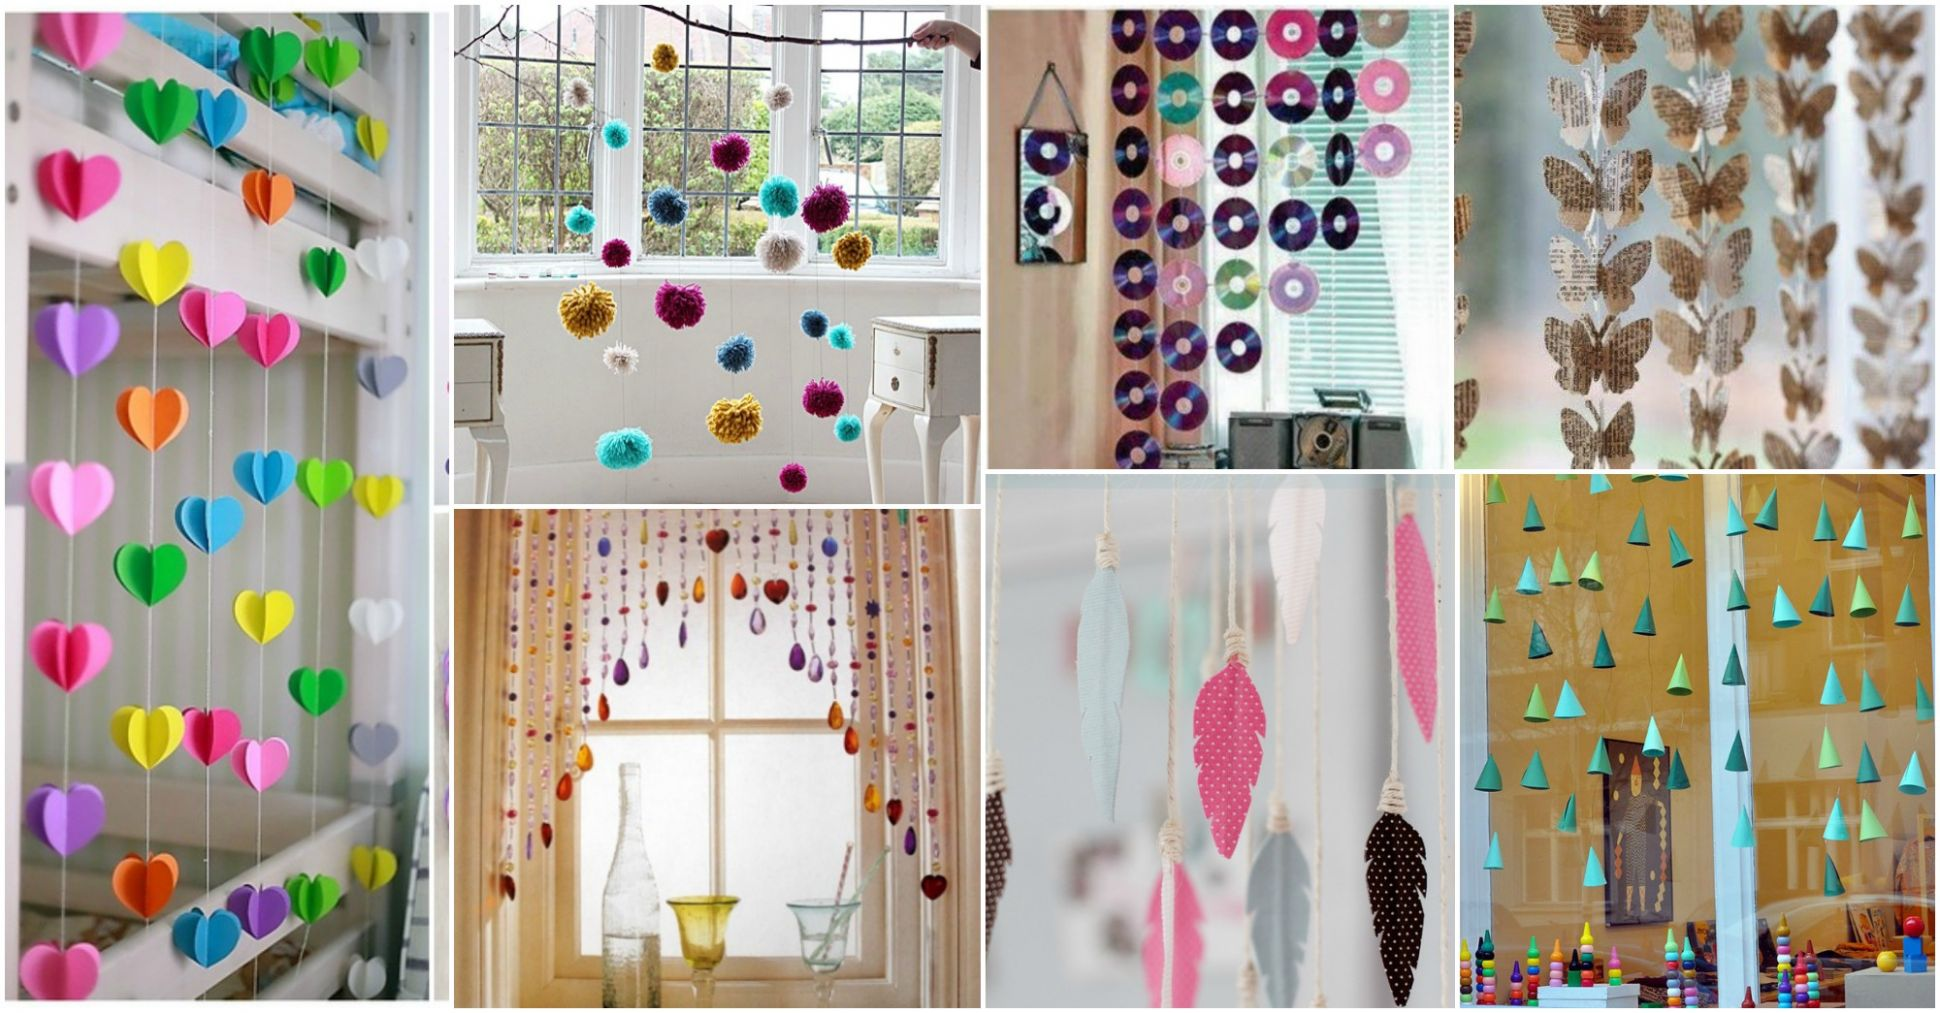 DIY Hanging Window Decorations That Will Brighten Up Your Day - window hanging ideas